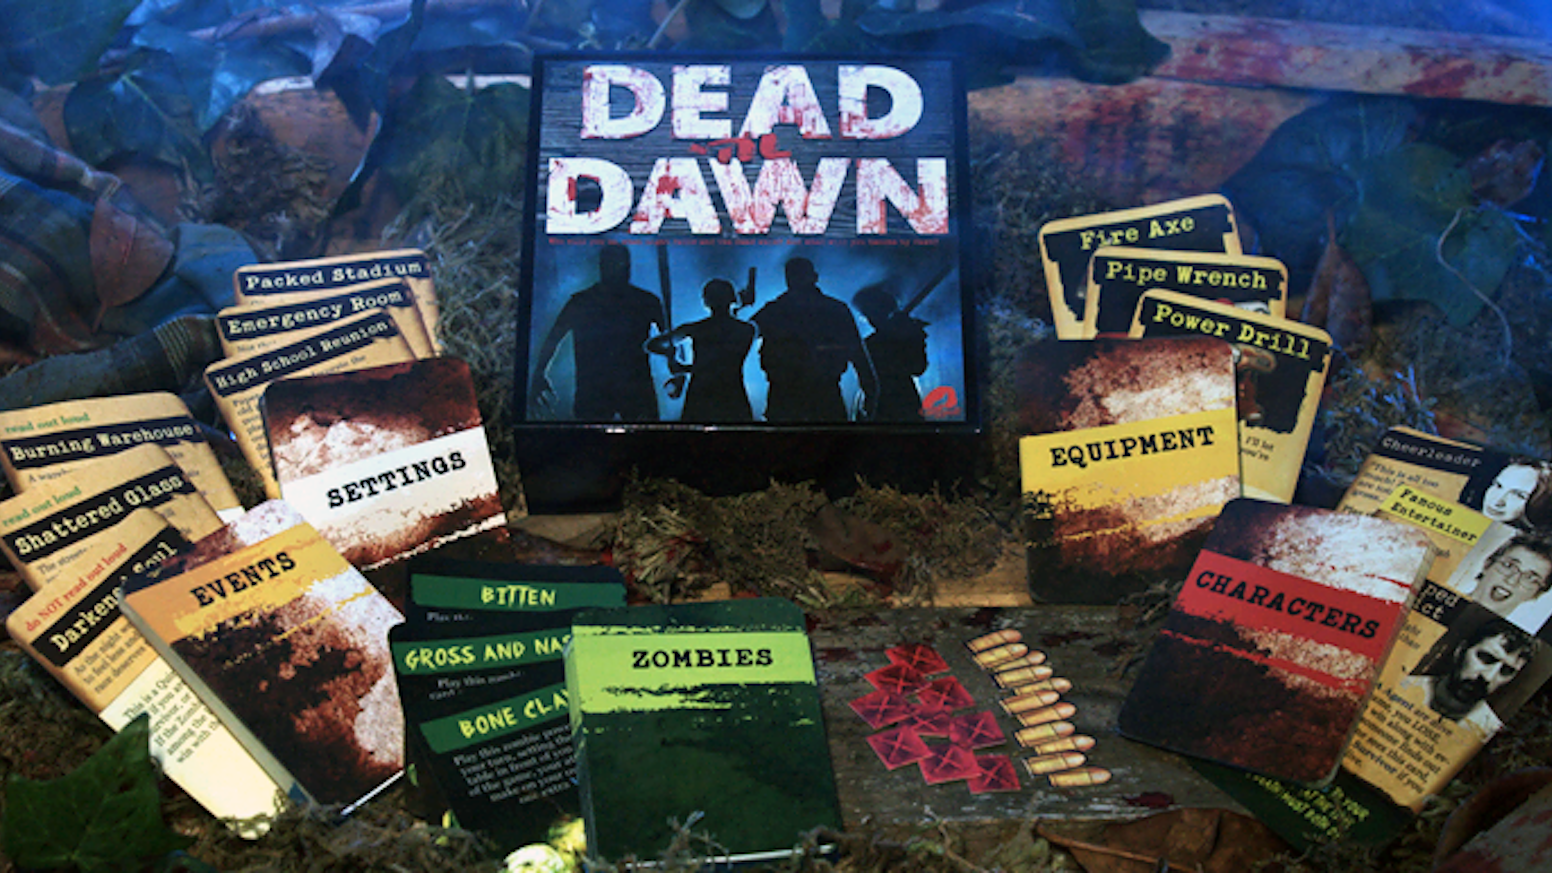 Experience a unique zombie apocalypse story line with your friends full of choices, voting, chance, alliances, combat, and betrayals! Get yours at www.cavewolfgames.com!